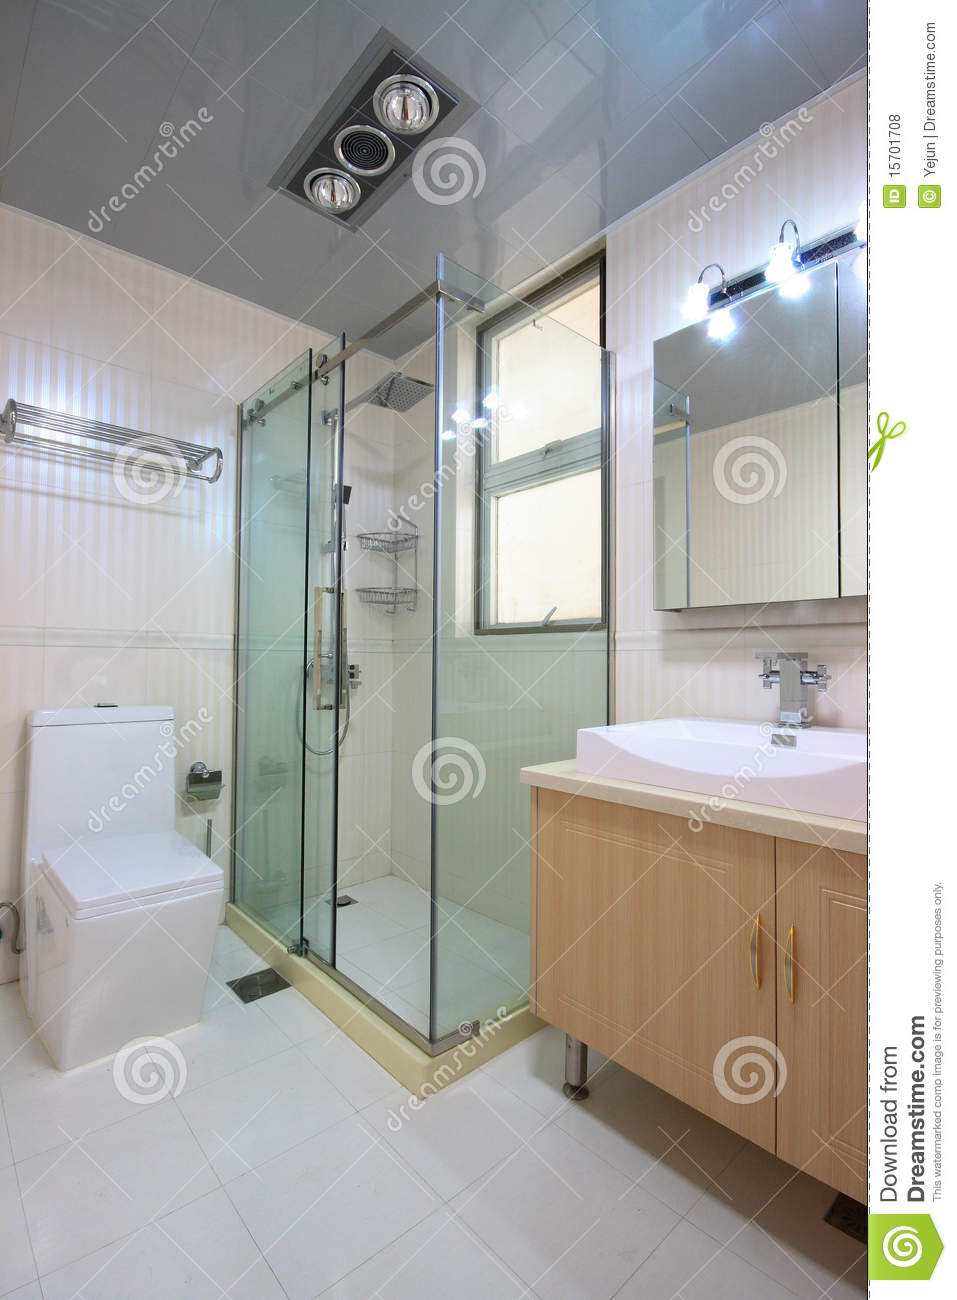 Bathroom Royalty Free Stock Photos Image 15701708